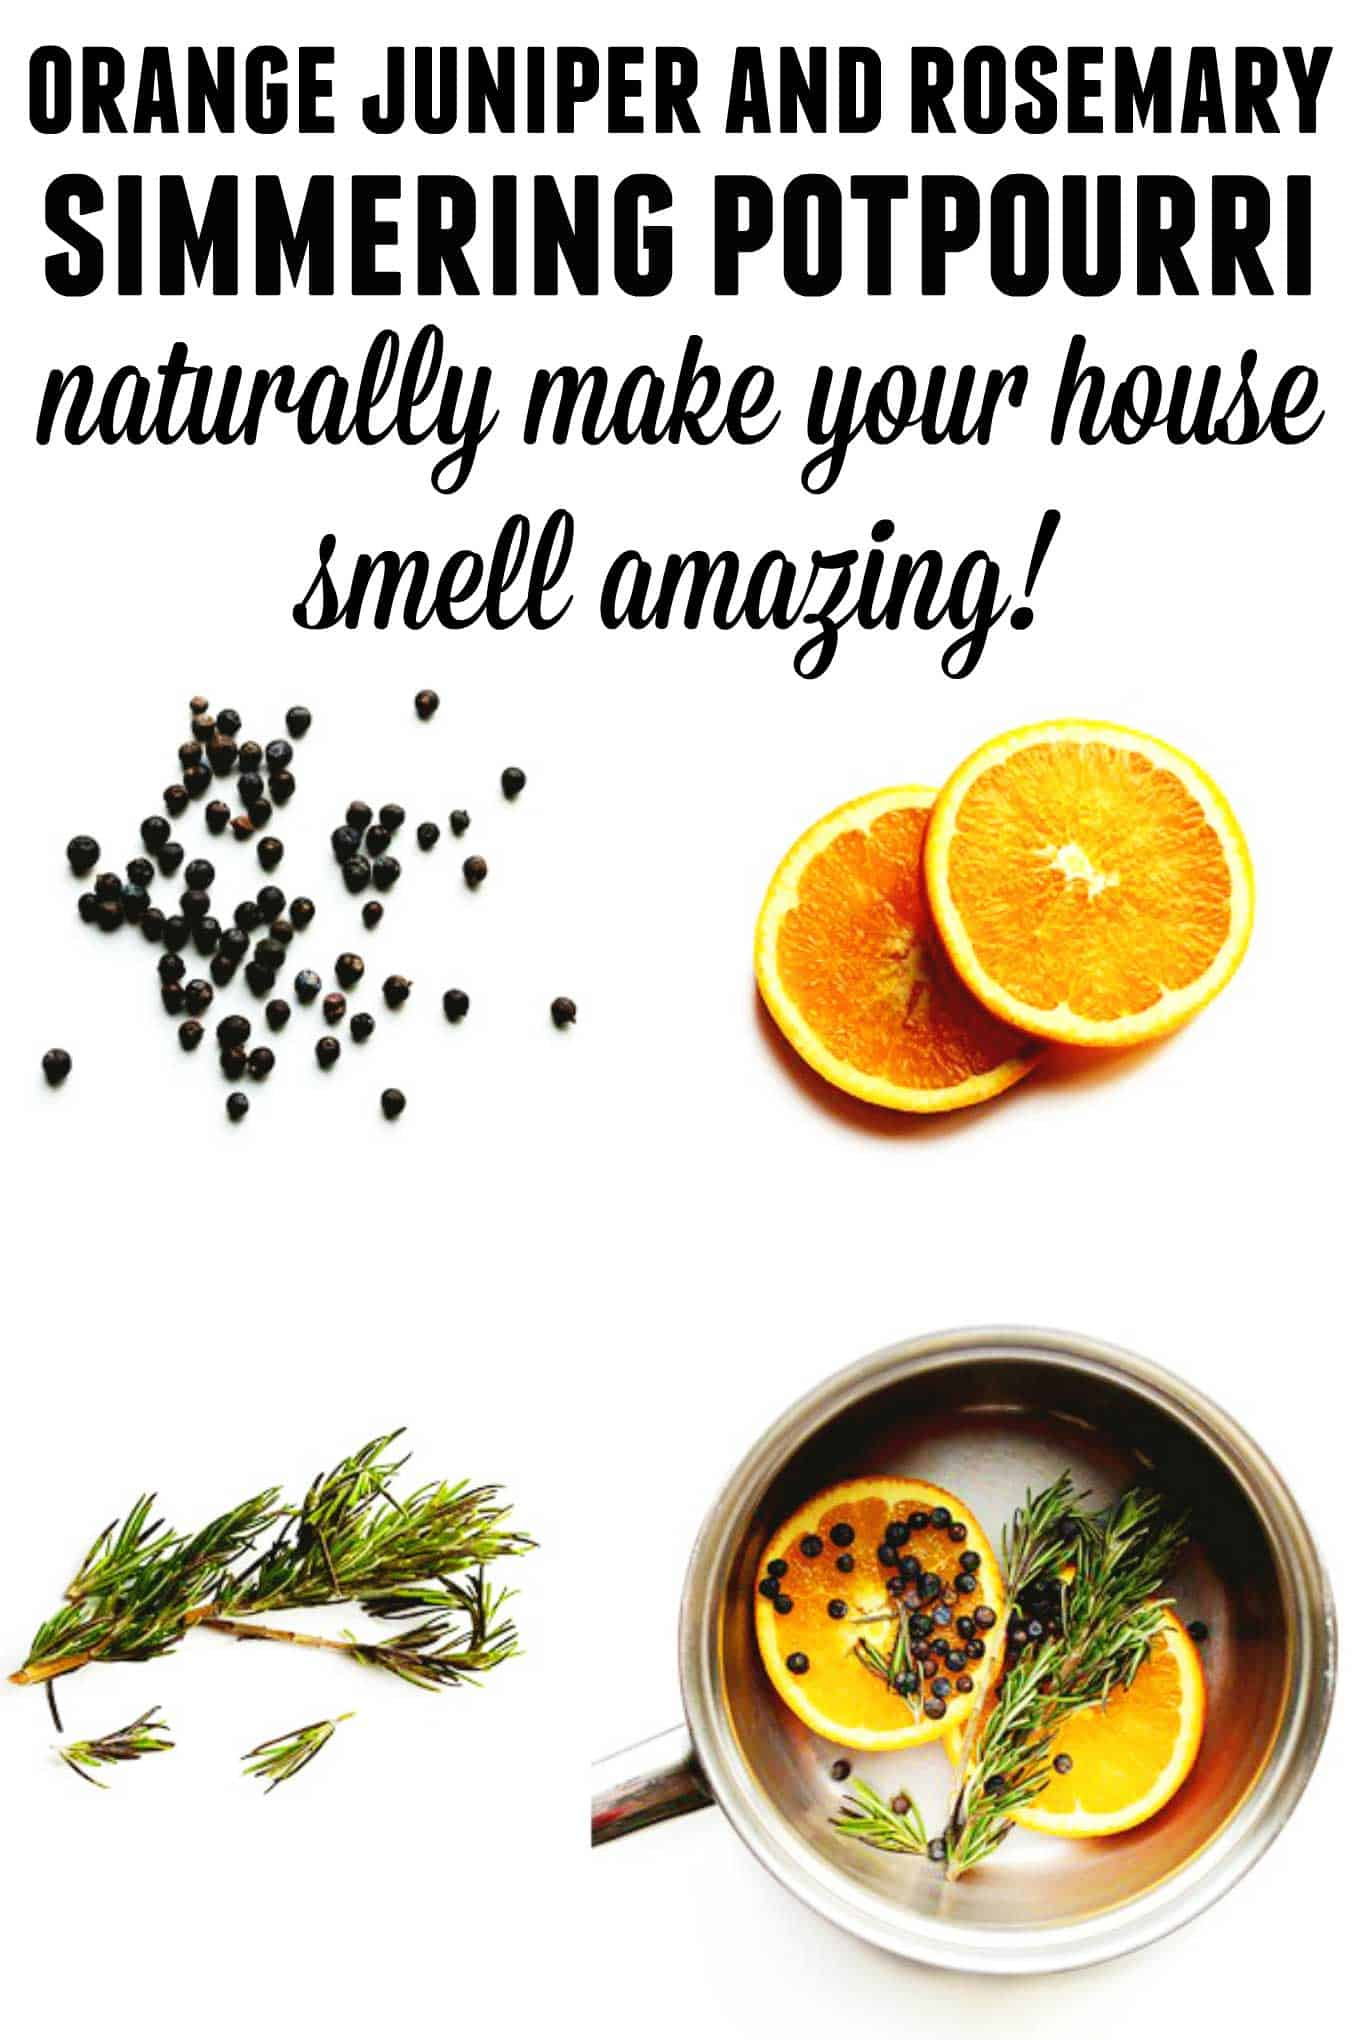 Orange Juniper Rosemary pot simmer recipe! All natural simmering potpourri that will make your house smell fresh and amazing all day long. // Rhubarbarians // holiday potpourri / holiday pot simmer / holiday home / #potsimmer #potpourri #holidayhome #simmeringpotpourri #rhubarbarians